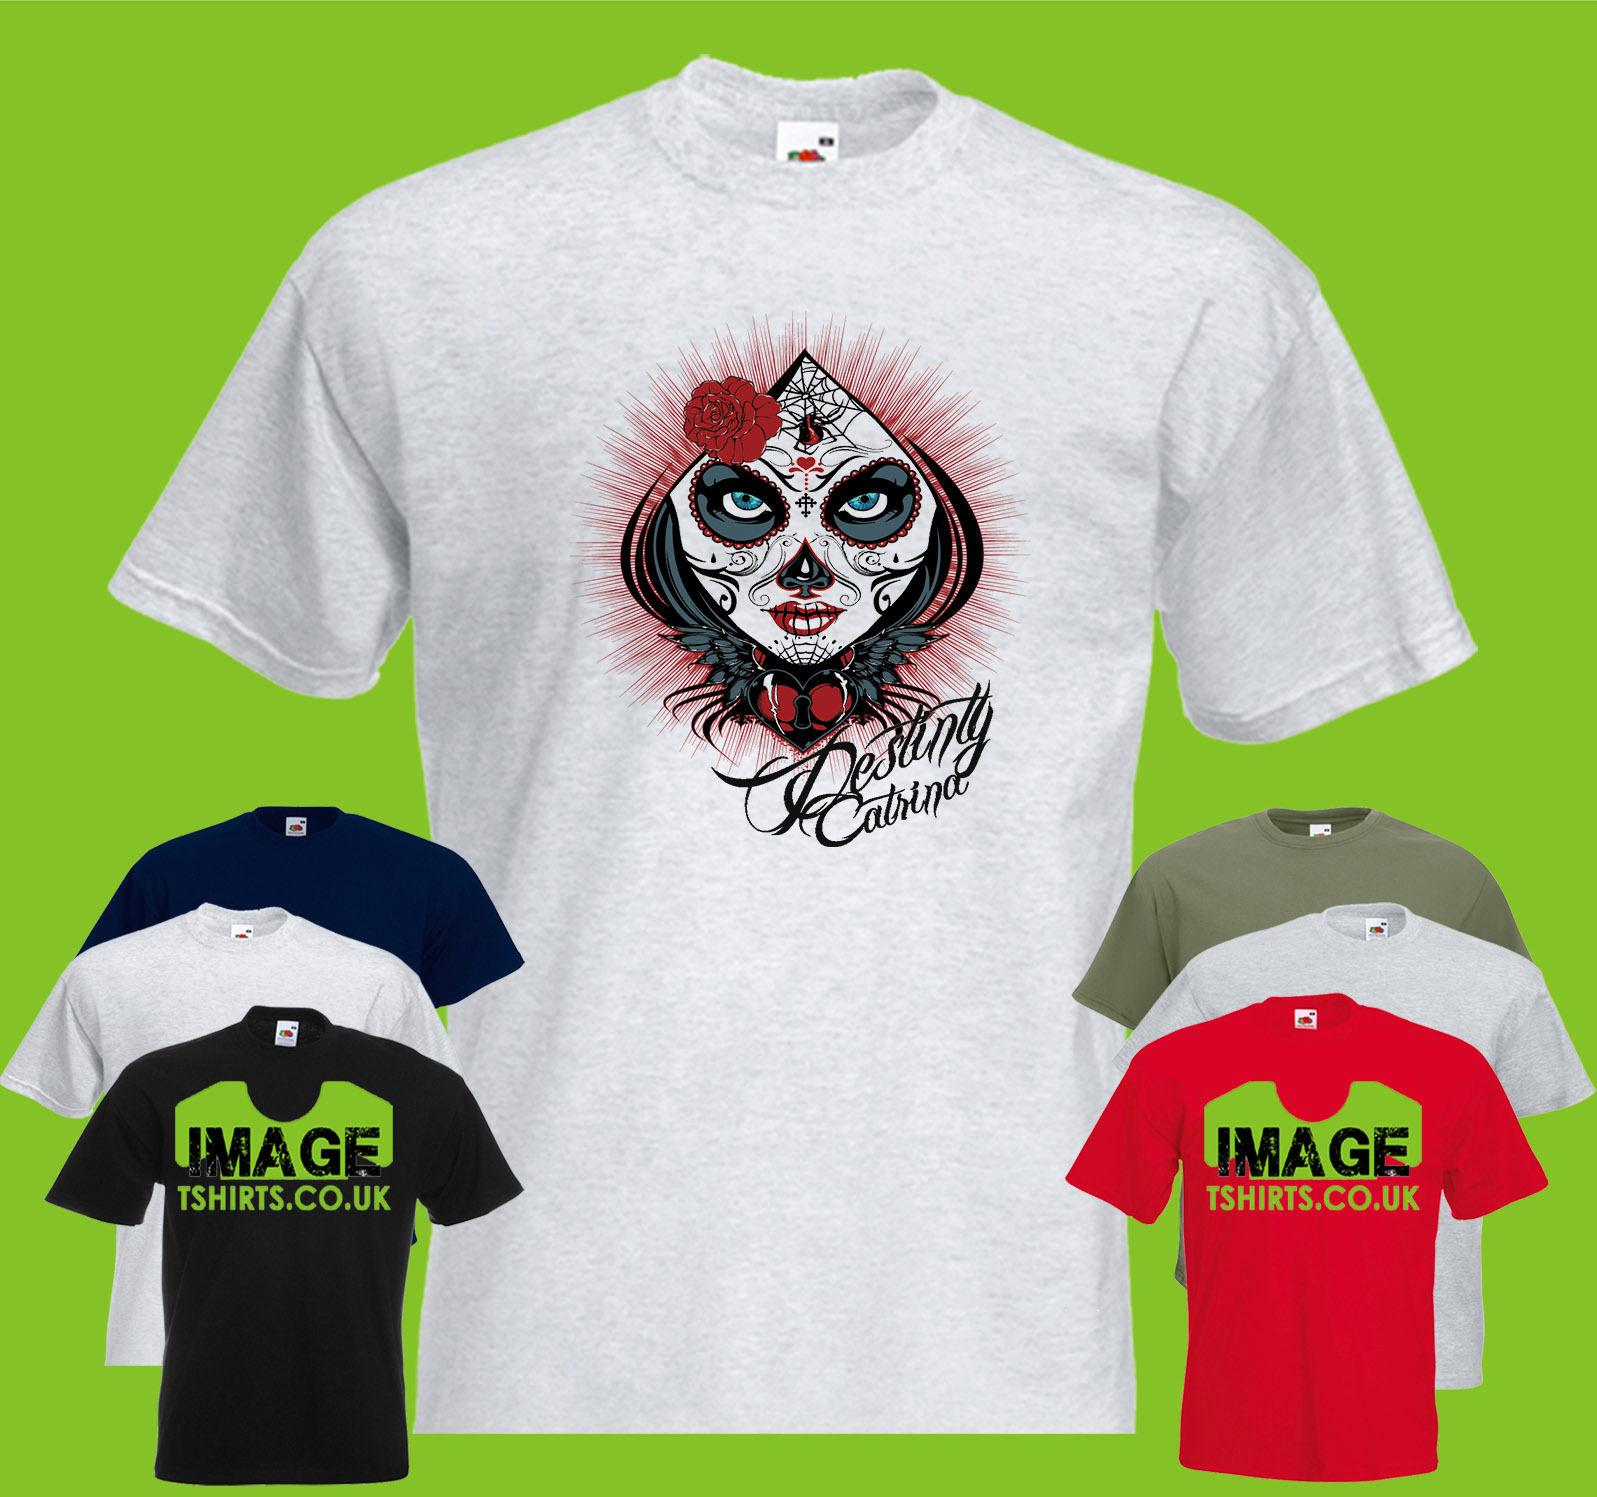 a0ae50adb4d Destiny Catrina Mens PRINTED T-SHIRT Flower Heart Rose Spider Wings ...